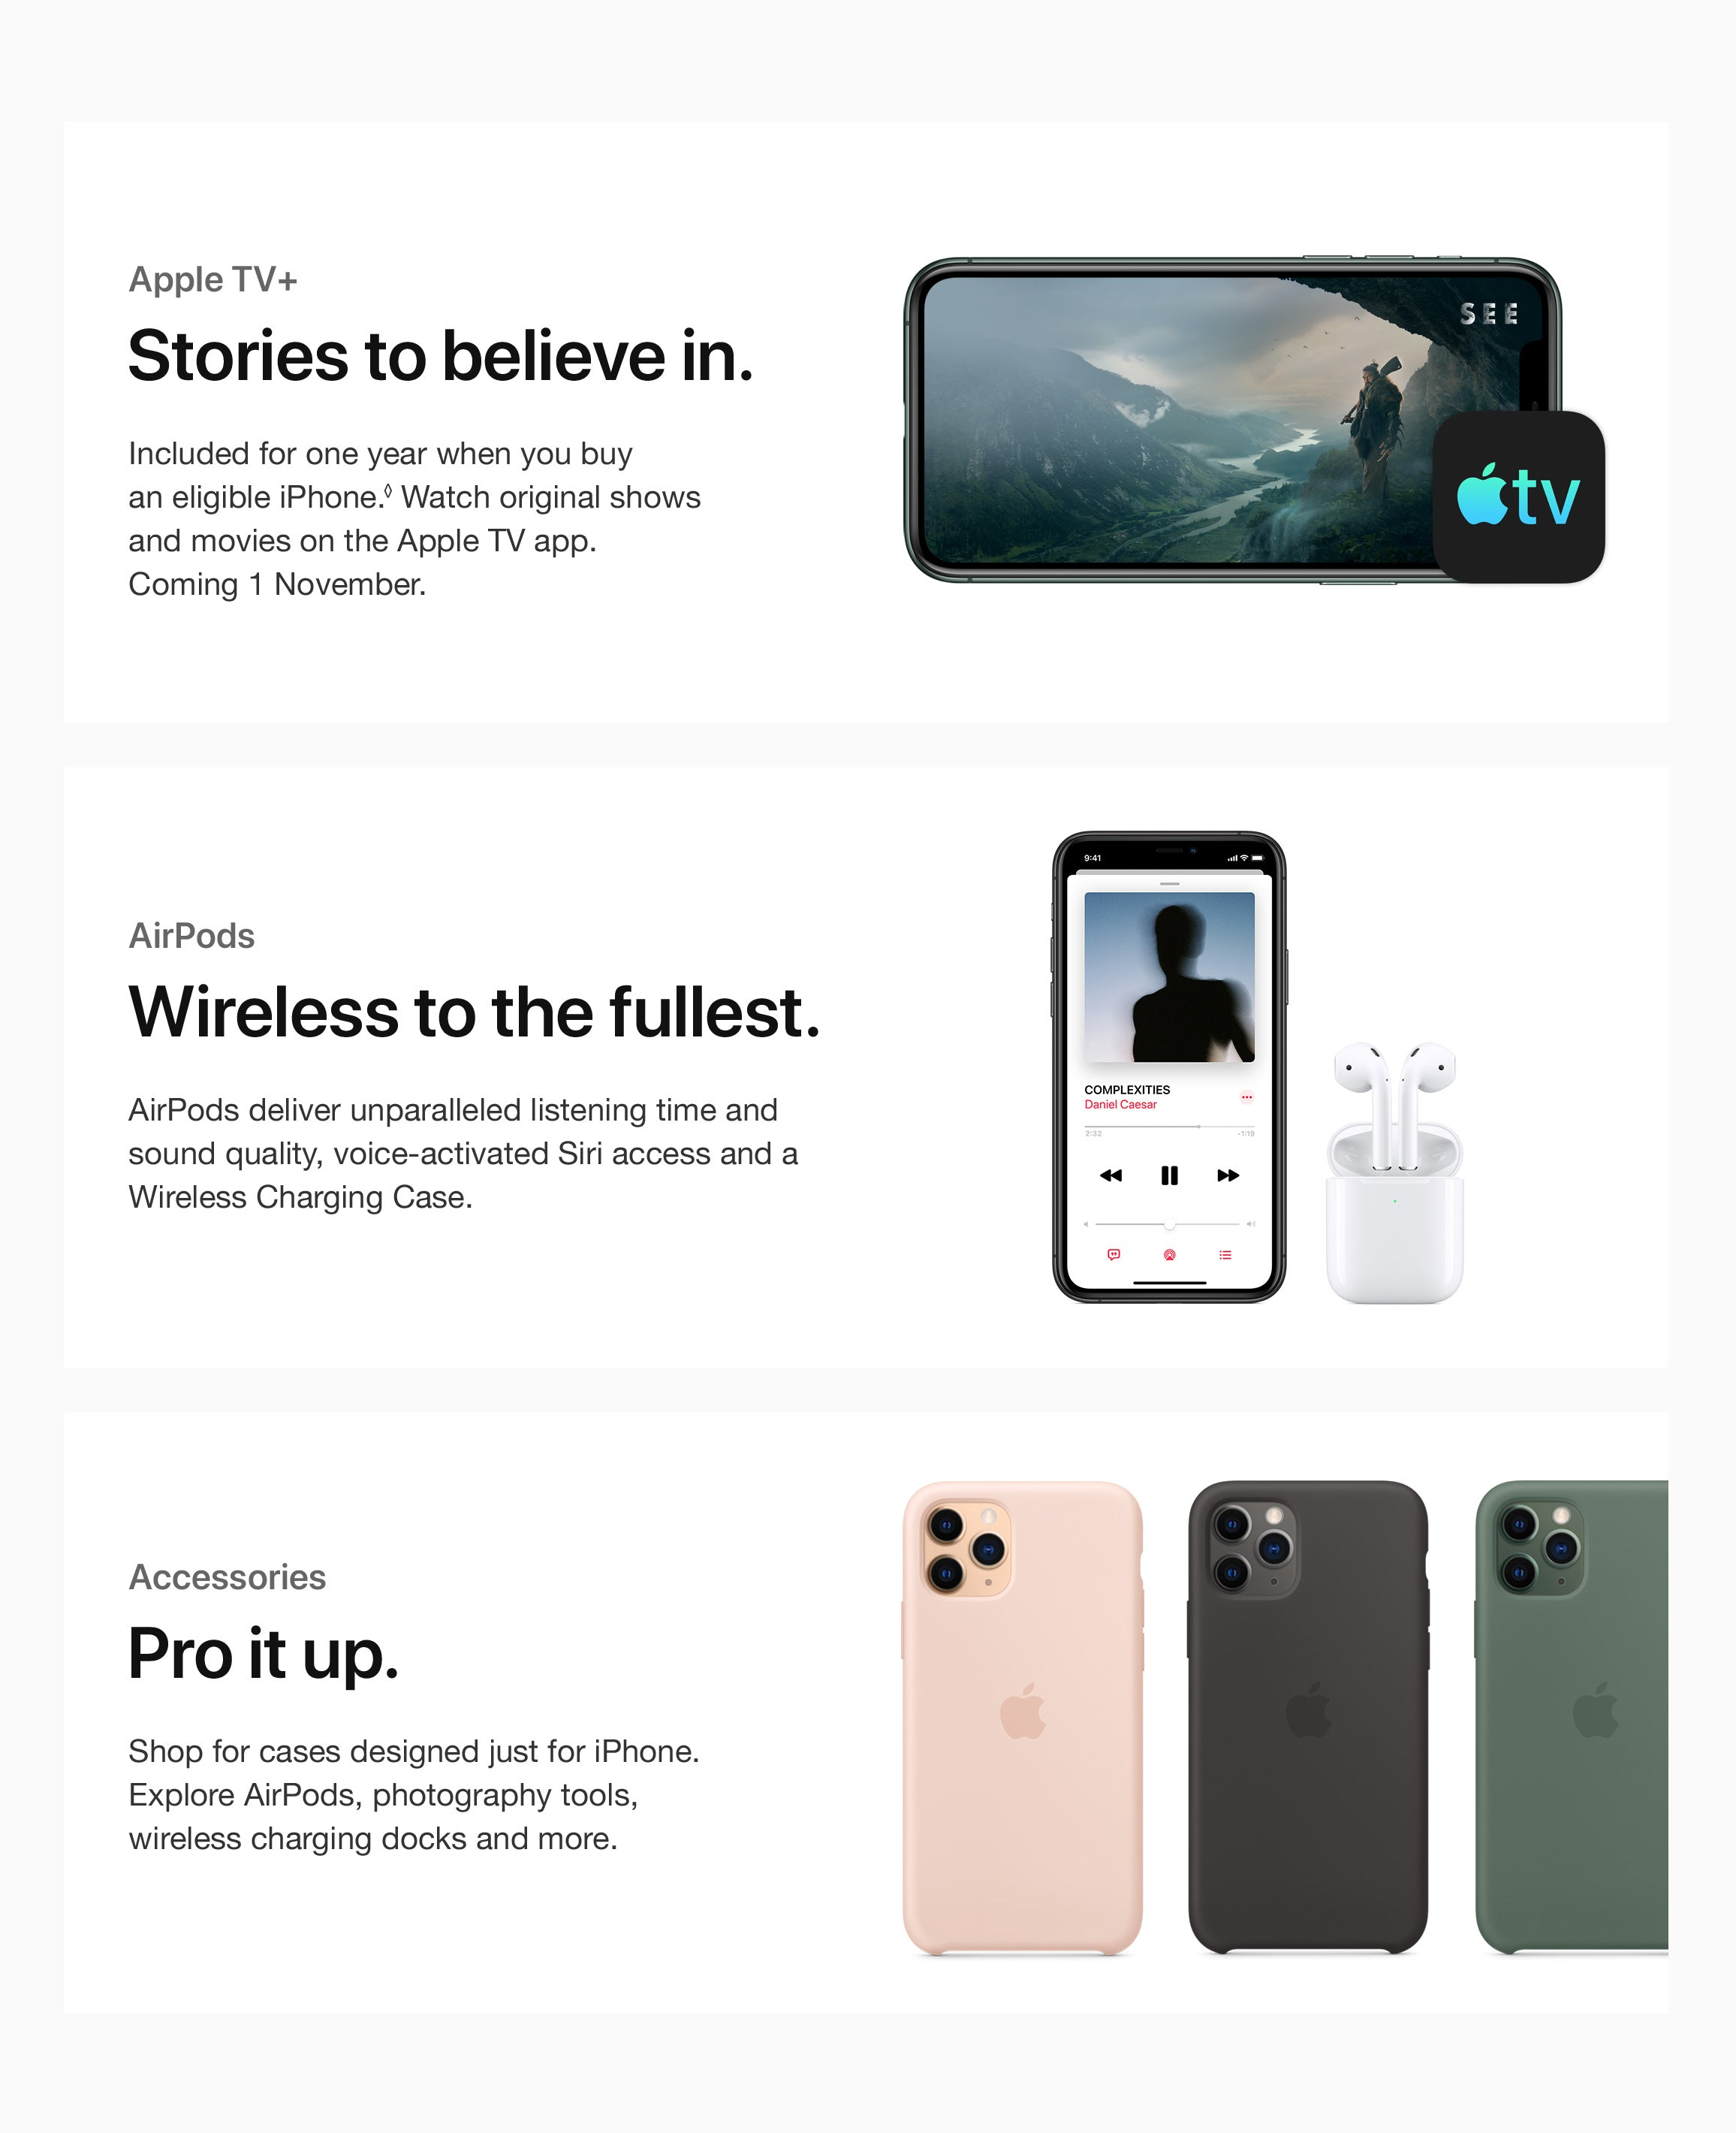 Apple TV+ - Stories to believe in Included for one year when you buy  an eligible iPhone.◊ Watch original shows  and movies on the Apple TV app.  Coming 2 November.  AirPods Wireless to the fullest. AirPods deliver unparalleled listening time and sound quality, voice-activated Siri access and a Wireless Charging Case.  Accessories Pro it up. Shop for cases designed just for iPhone. Explore AirPods, photography tools, wireless charging docks and more.